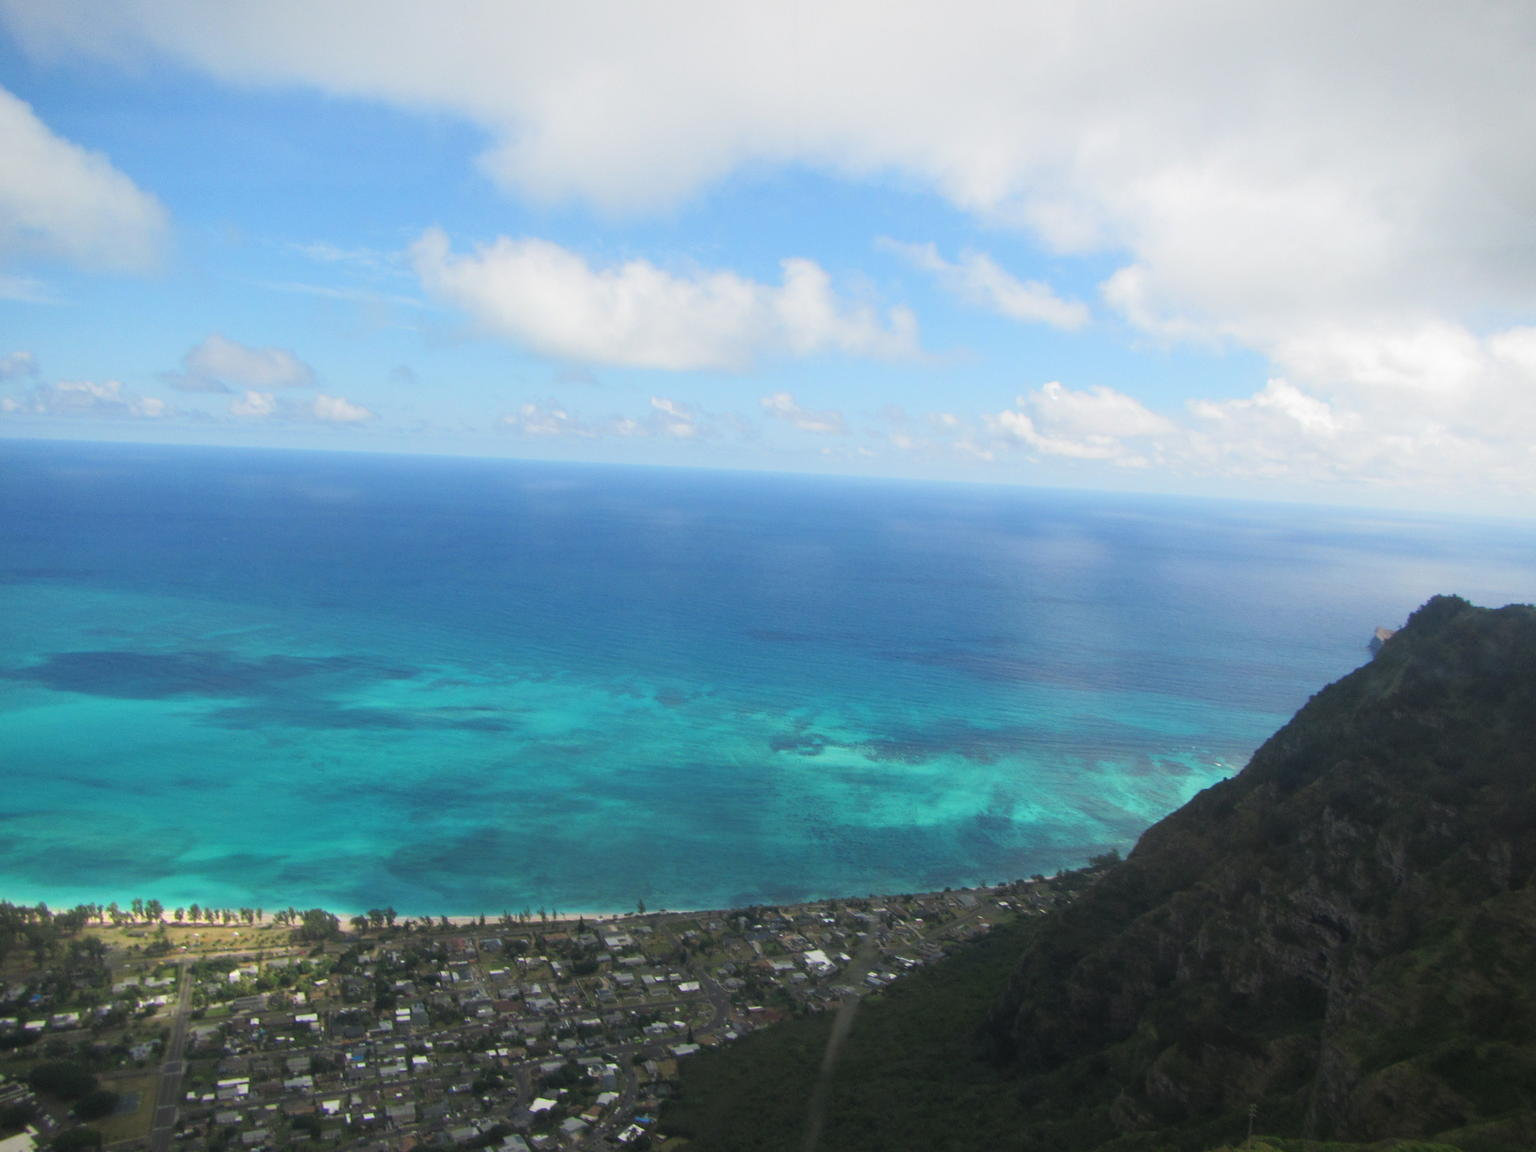 Path to Pali Passage - 30 Min Helicopter Tour - Doors Off or On